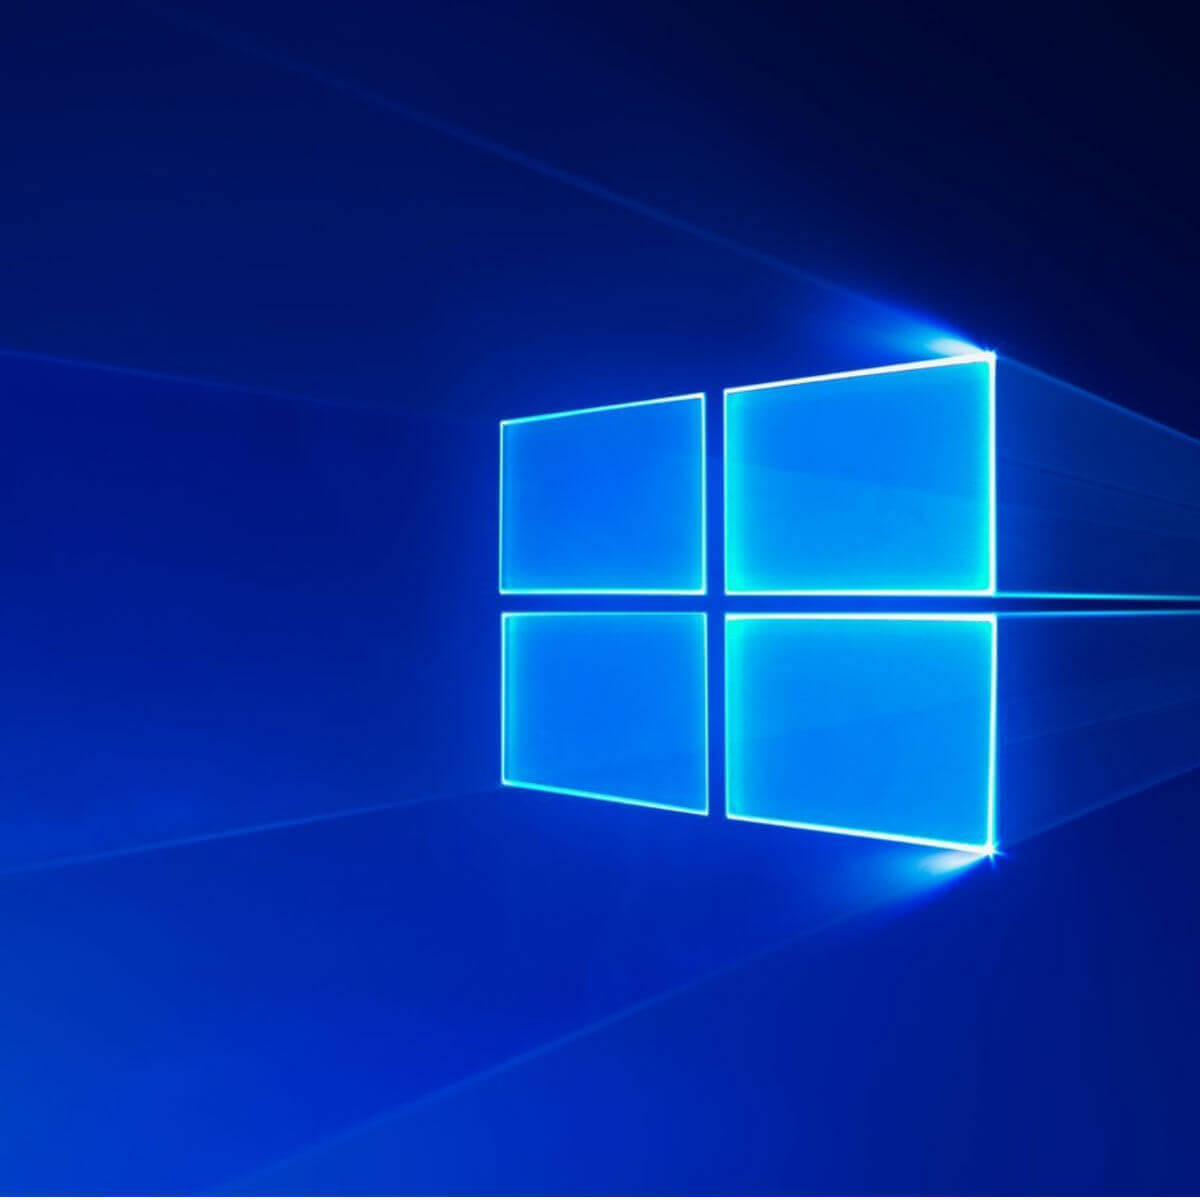 Windows Błąd aktualizacji 0x80070490 w Windows 10 [UPDATED GUIDE]